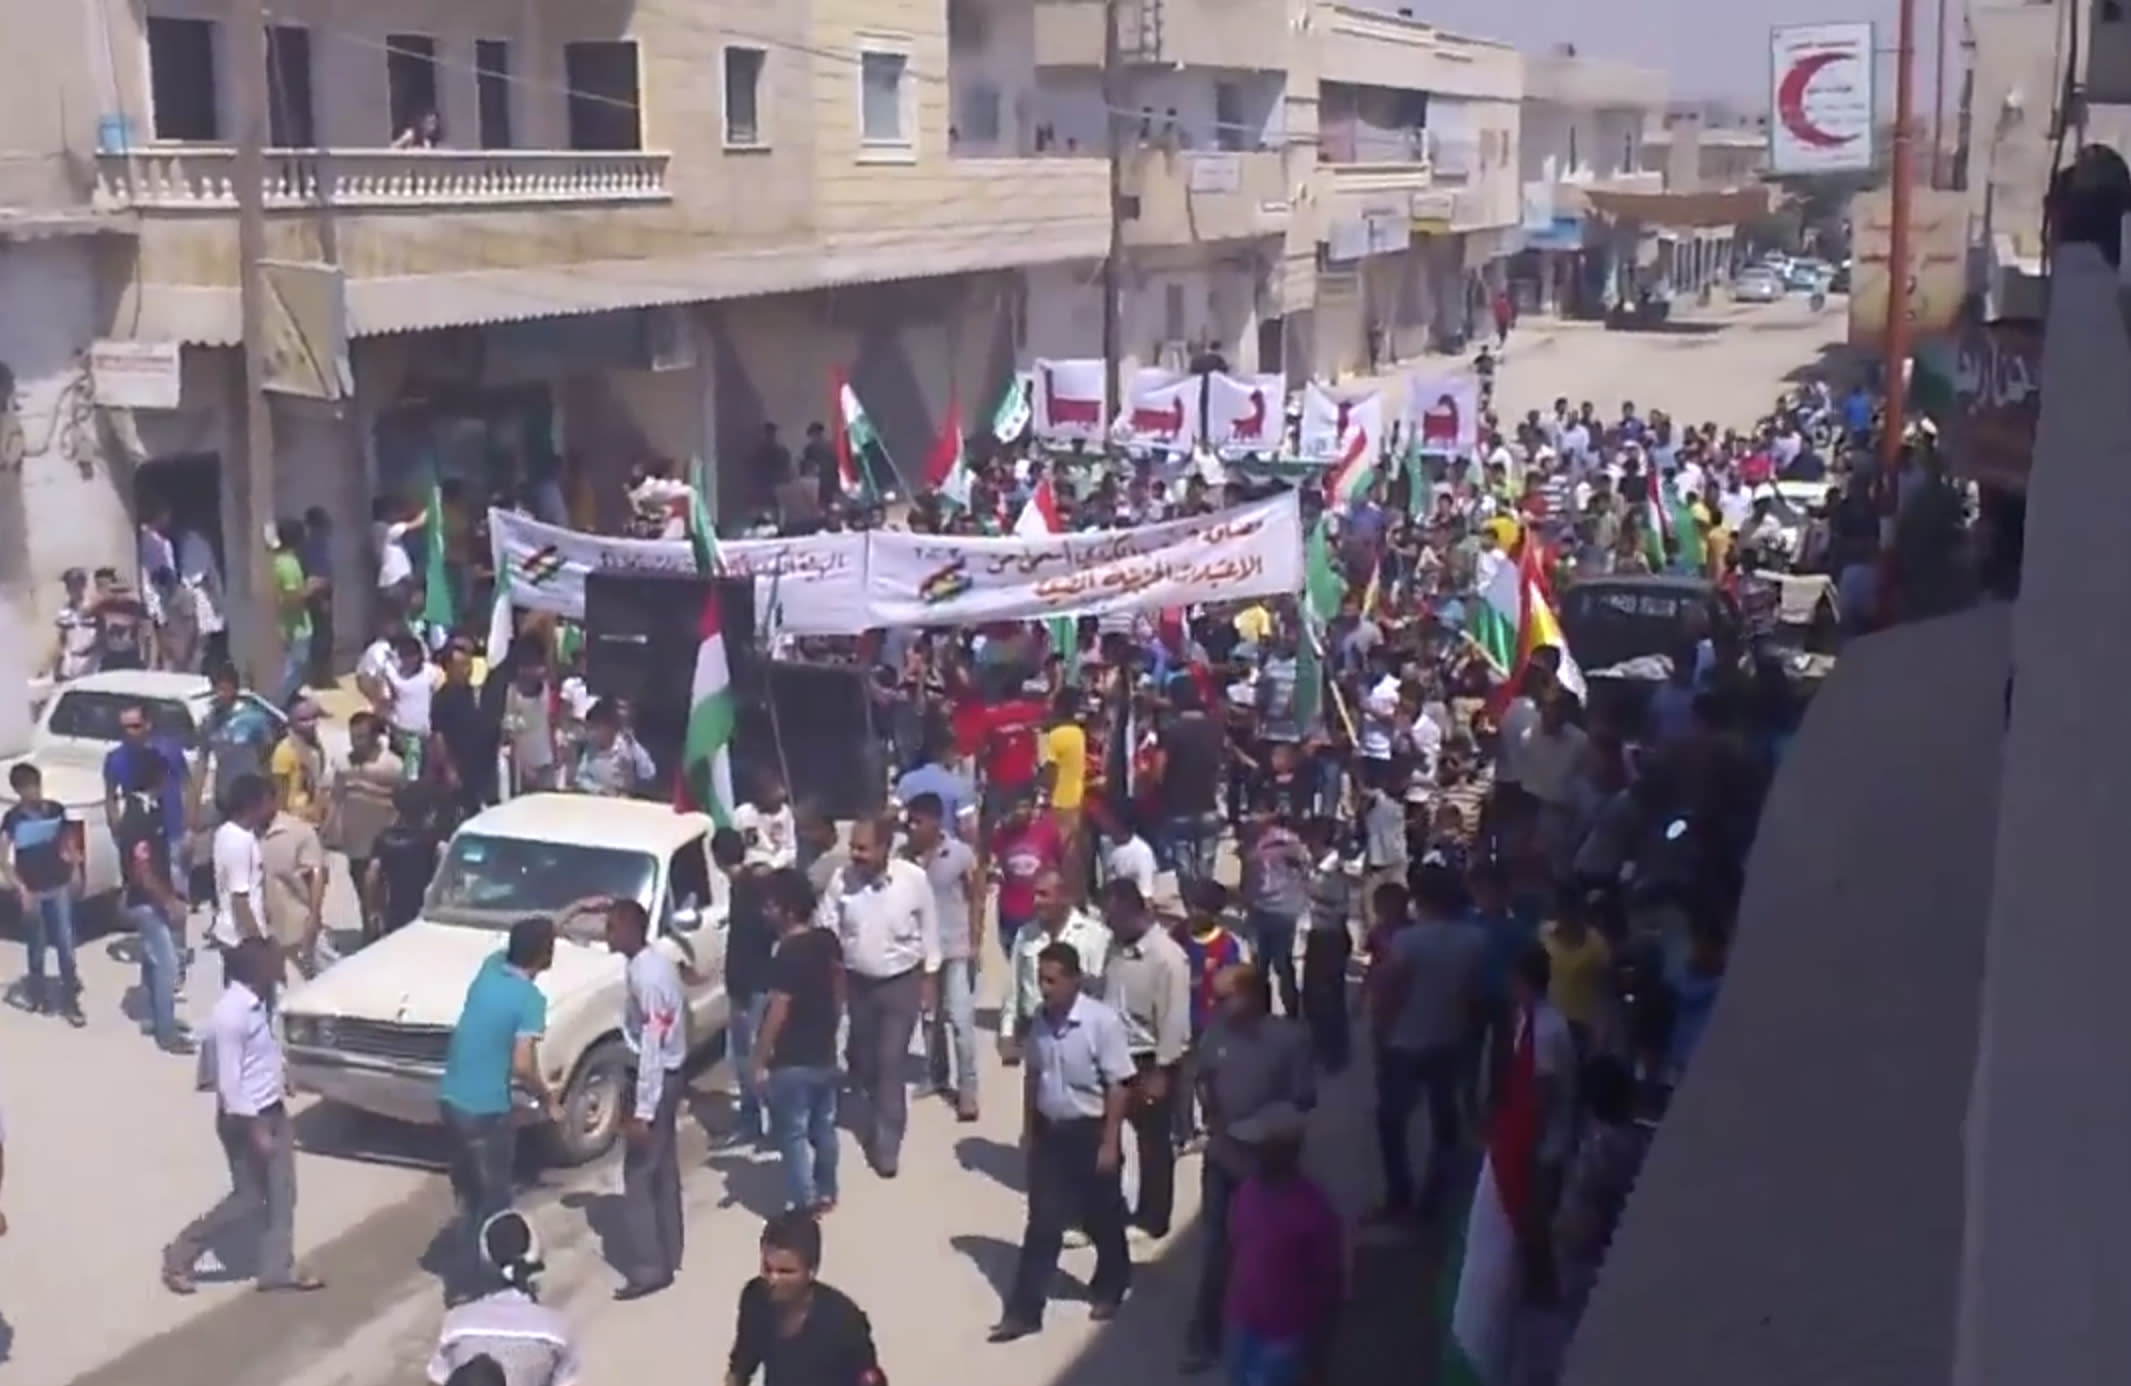 This image made from video provided by Shaam News Network (SNN) and accessed via AP video purports to show a demonstration in Aleppo, Syria, Friday, Aug. 31, 2012. Syrian rebels have begun a major operation in the Aleppo region, aiming to strike at security compounds and bases around Syria's largest city, activists said Friday. It would be evidence that weeks of intense bombardments by the Syrian military, including airstrikes, have failed to dislodge the rebels. Instead, fighting rages across the country in a 17-month civil war that shows no sign of ending soon. (AP Photo/Shaam News Network SNN via AP video) THE ASSOCIATED PRESS HAS NO WAY OF INDEPENDENTLY VERIFYING THE CONTENT, LOCATION OR DATE OF THIS PICTURE.